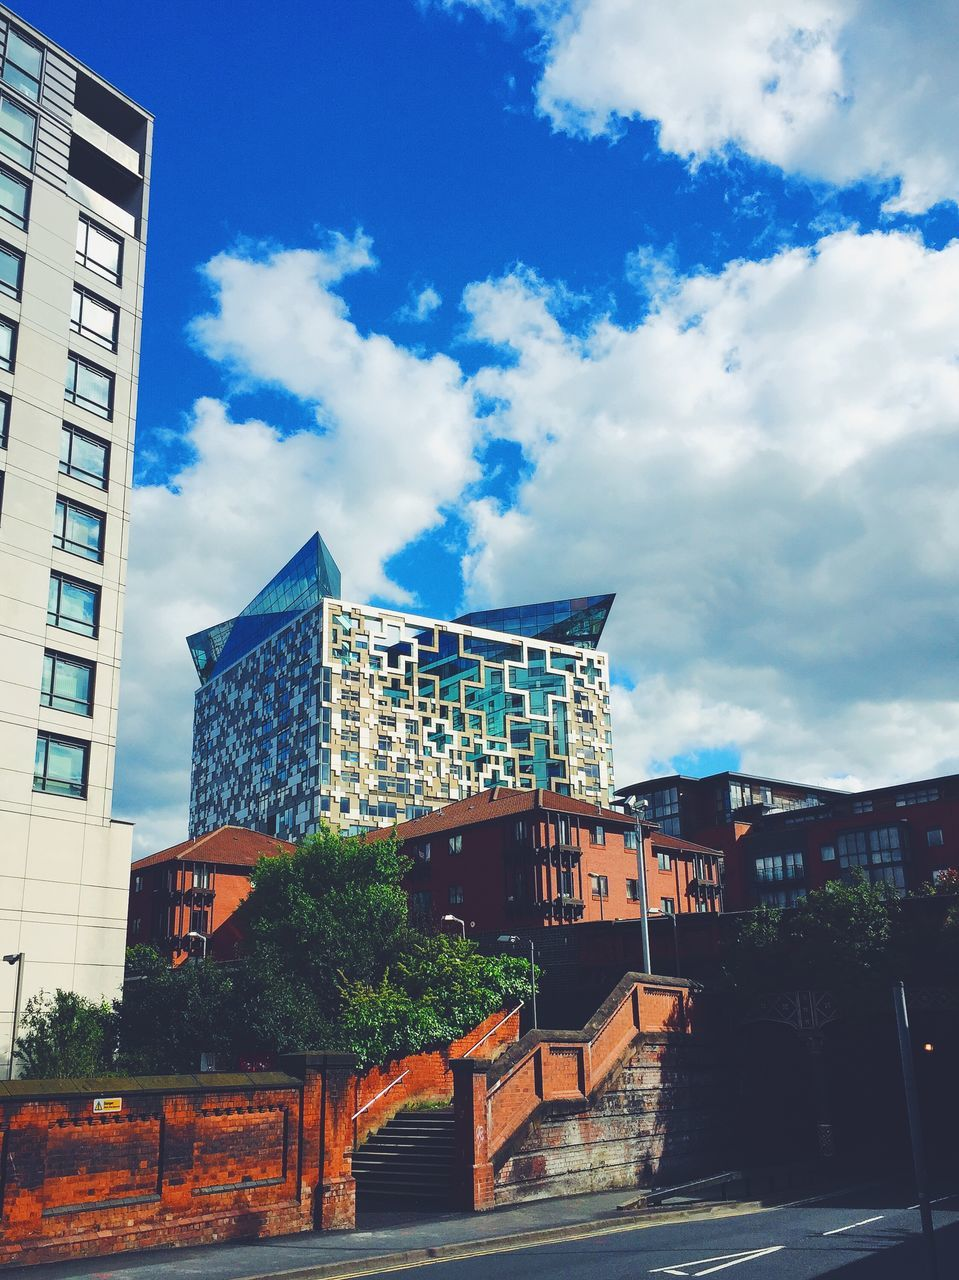 architecture, building exterior, built structure, sky, cloud - sky, outdoors, low angle view, no people, day, tree, city